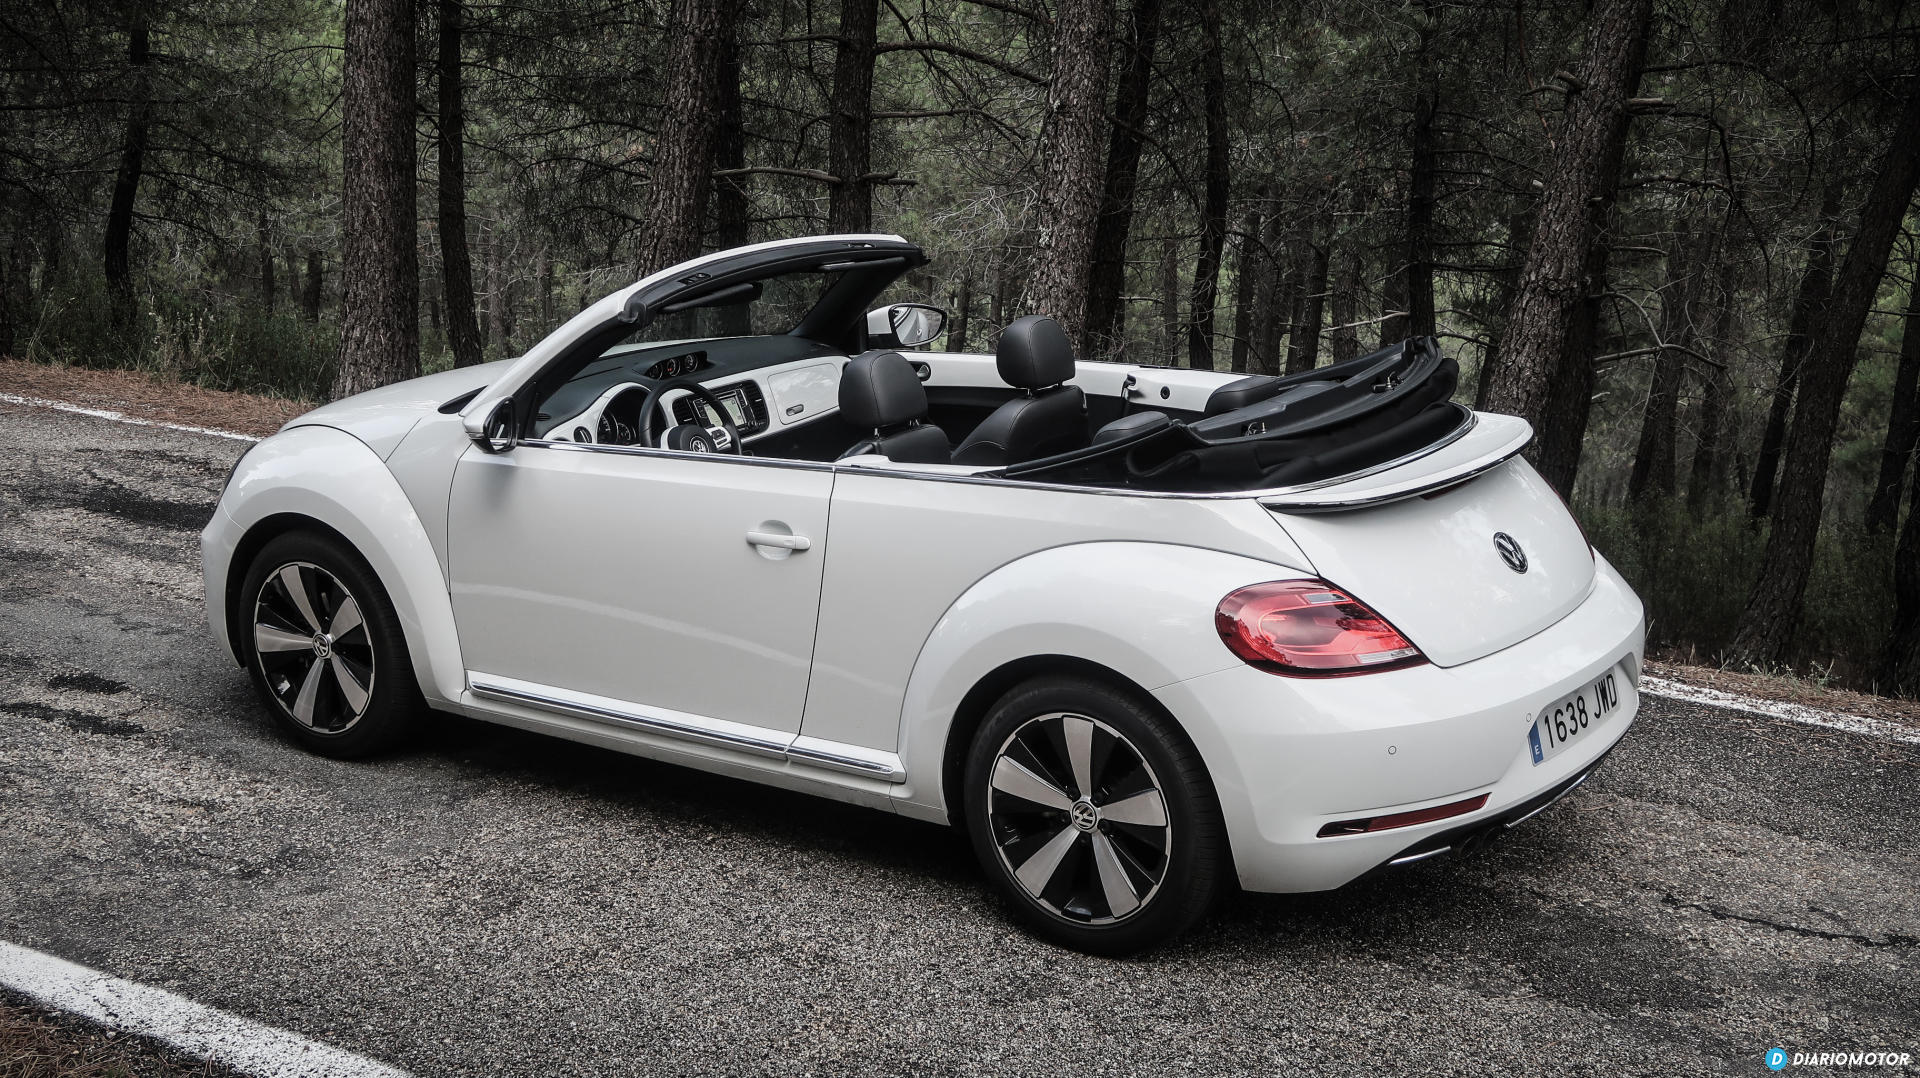 prueba del volkswagen beetle diariomotor. Black Bedroom Furniture Sets. Home Design Ideas